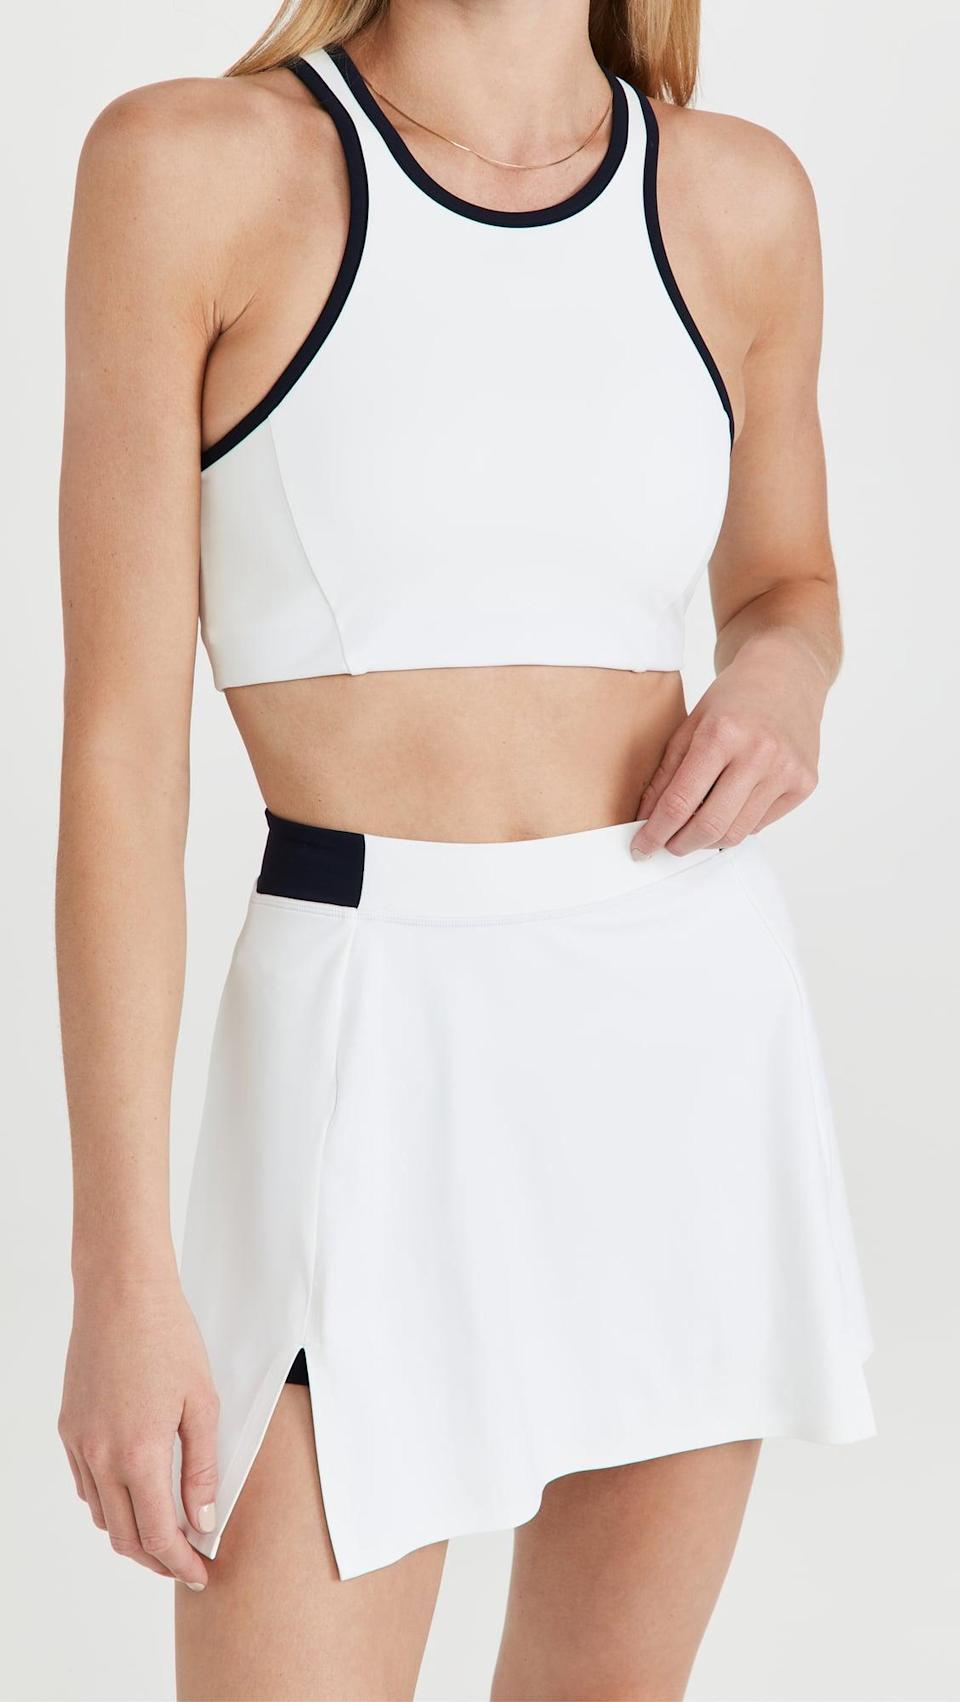 <p>As a former tennis player, I am thrilled about the rise in tennis fashion. I'd work out in this <span>Splits59 Blake Bra</span> ($78) and <span>Blake Regular Rise Techflex Skort</span> ($128) anytime.</p>